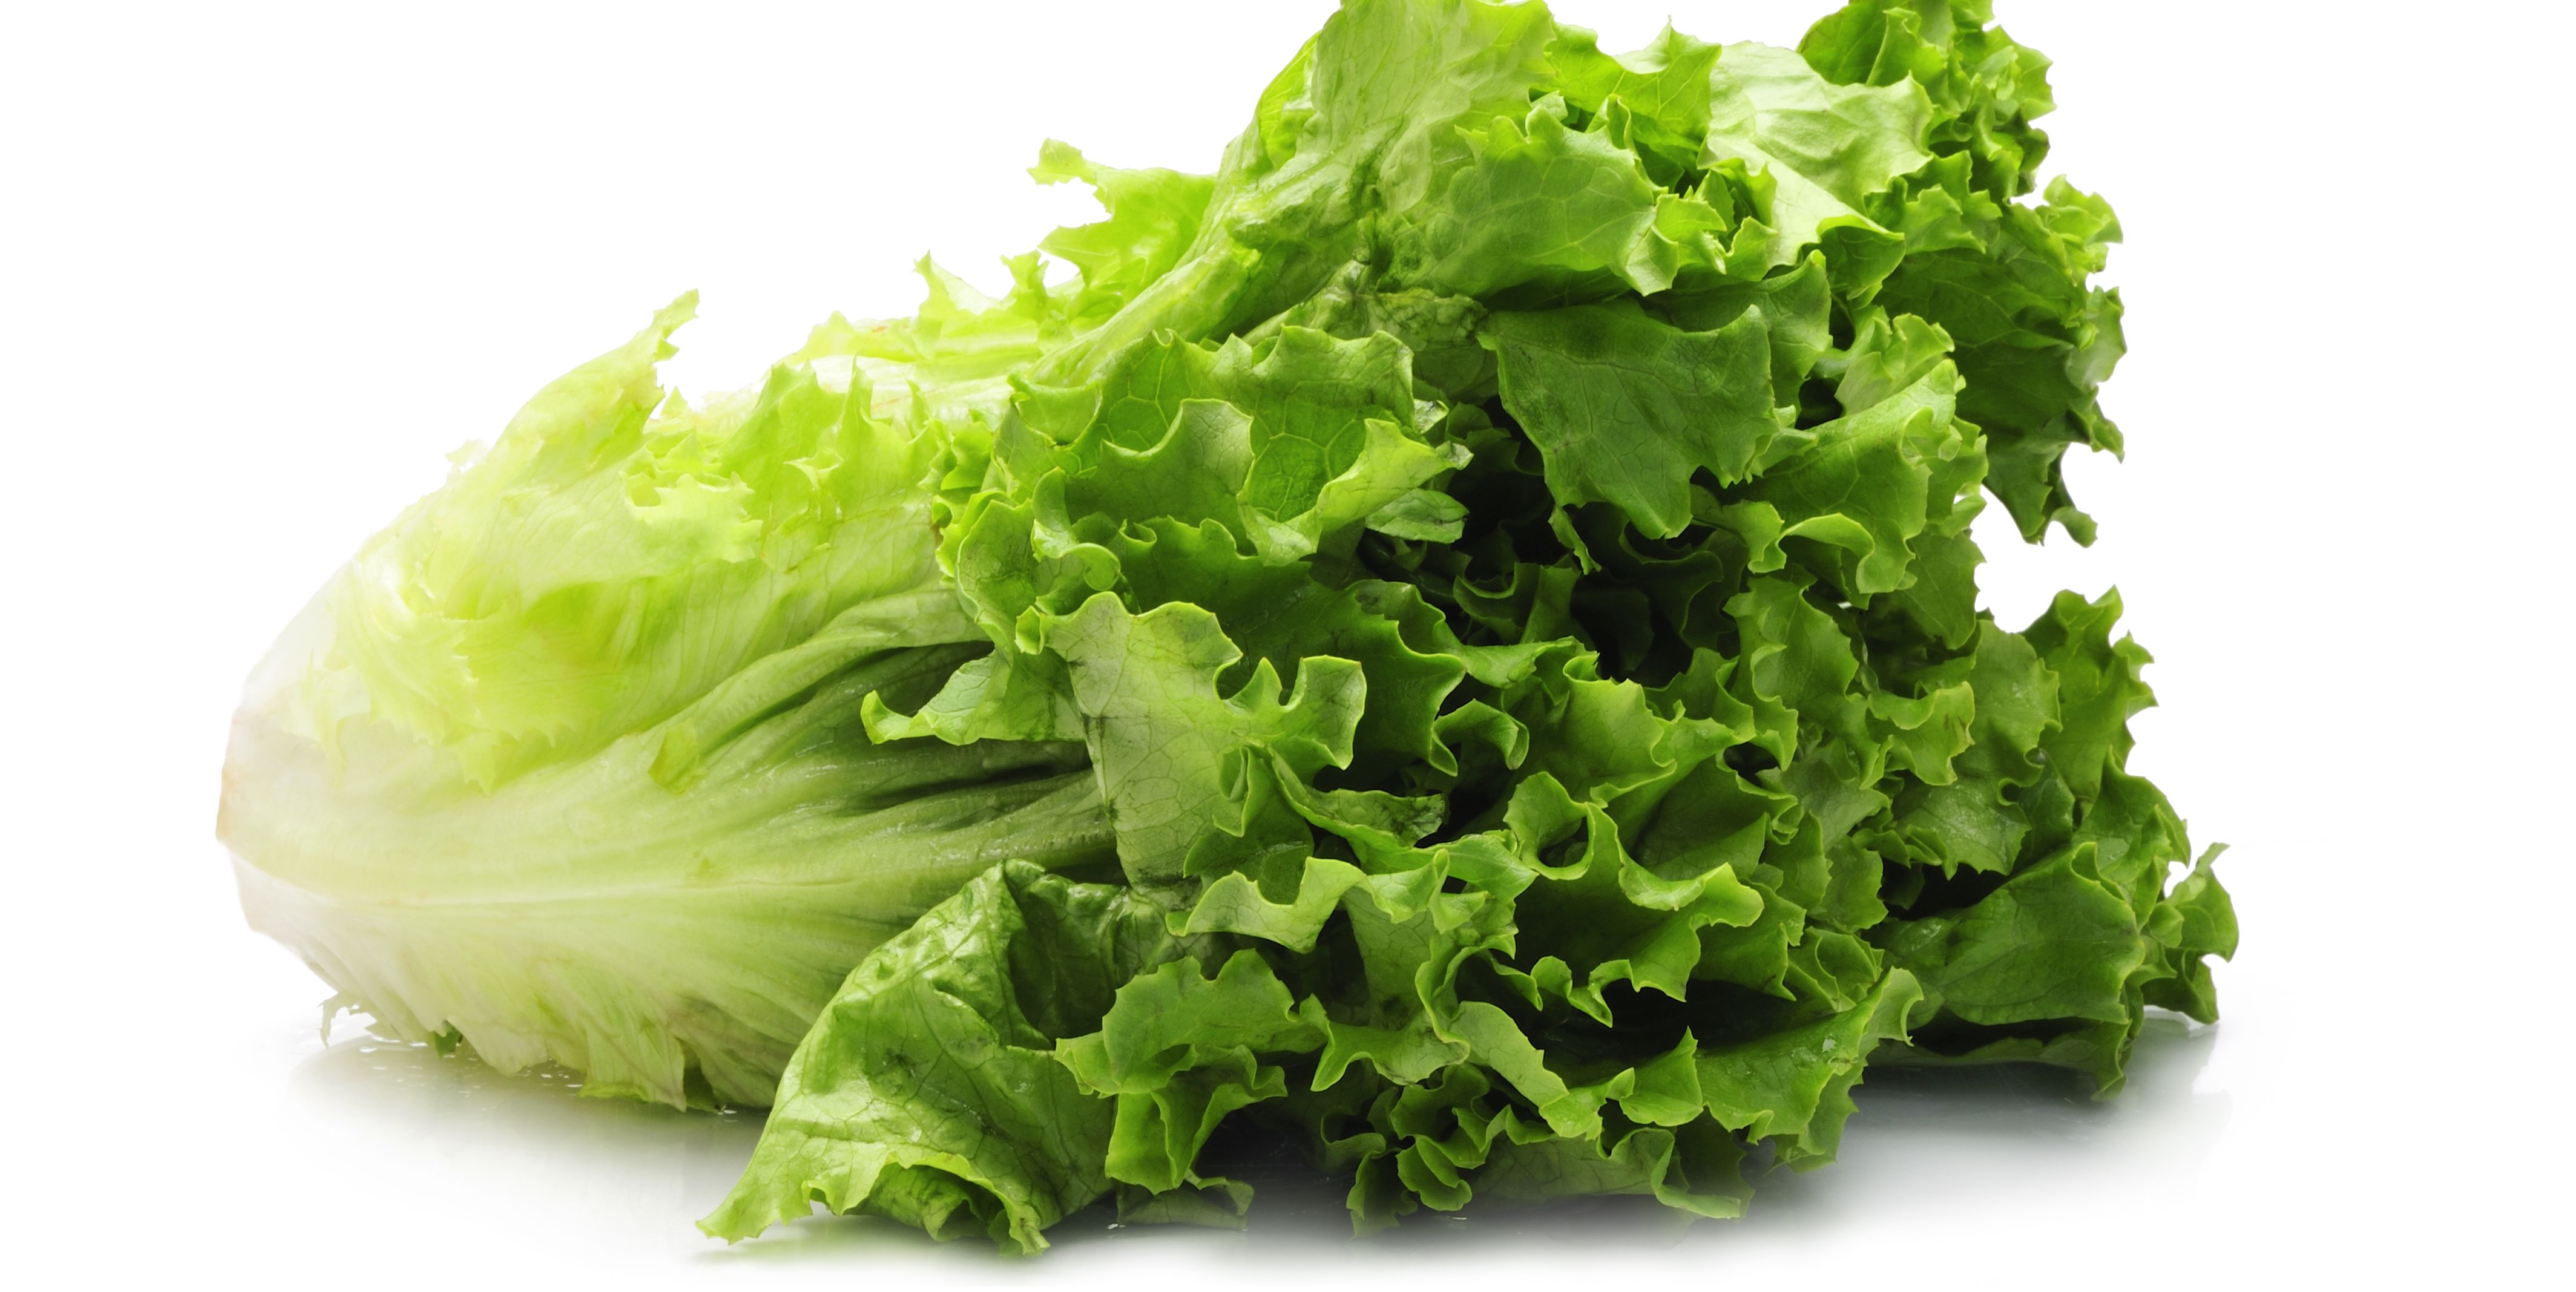 Stopping Eating Romaine Immediately, Health Officials Warn